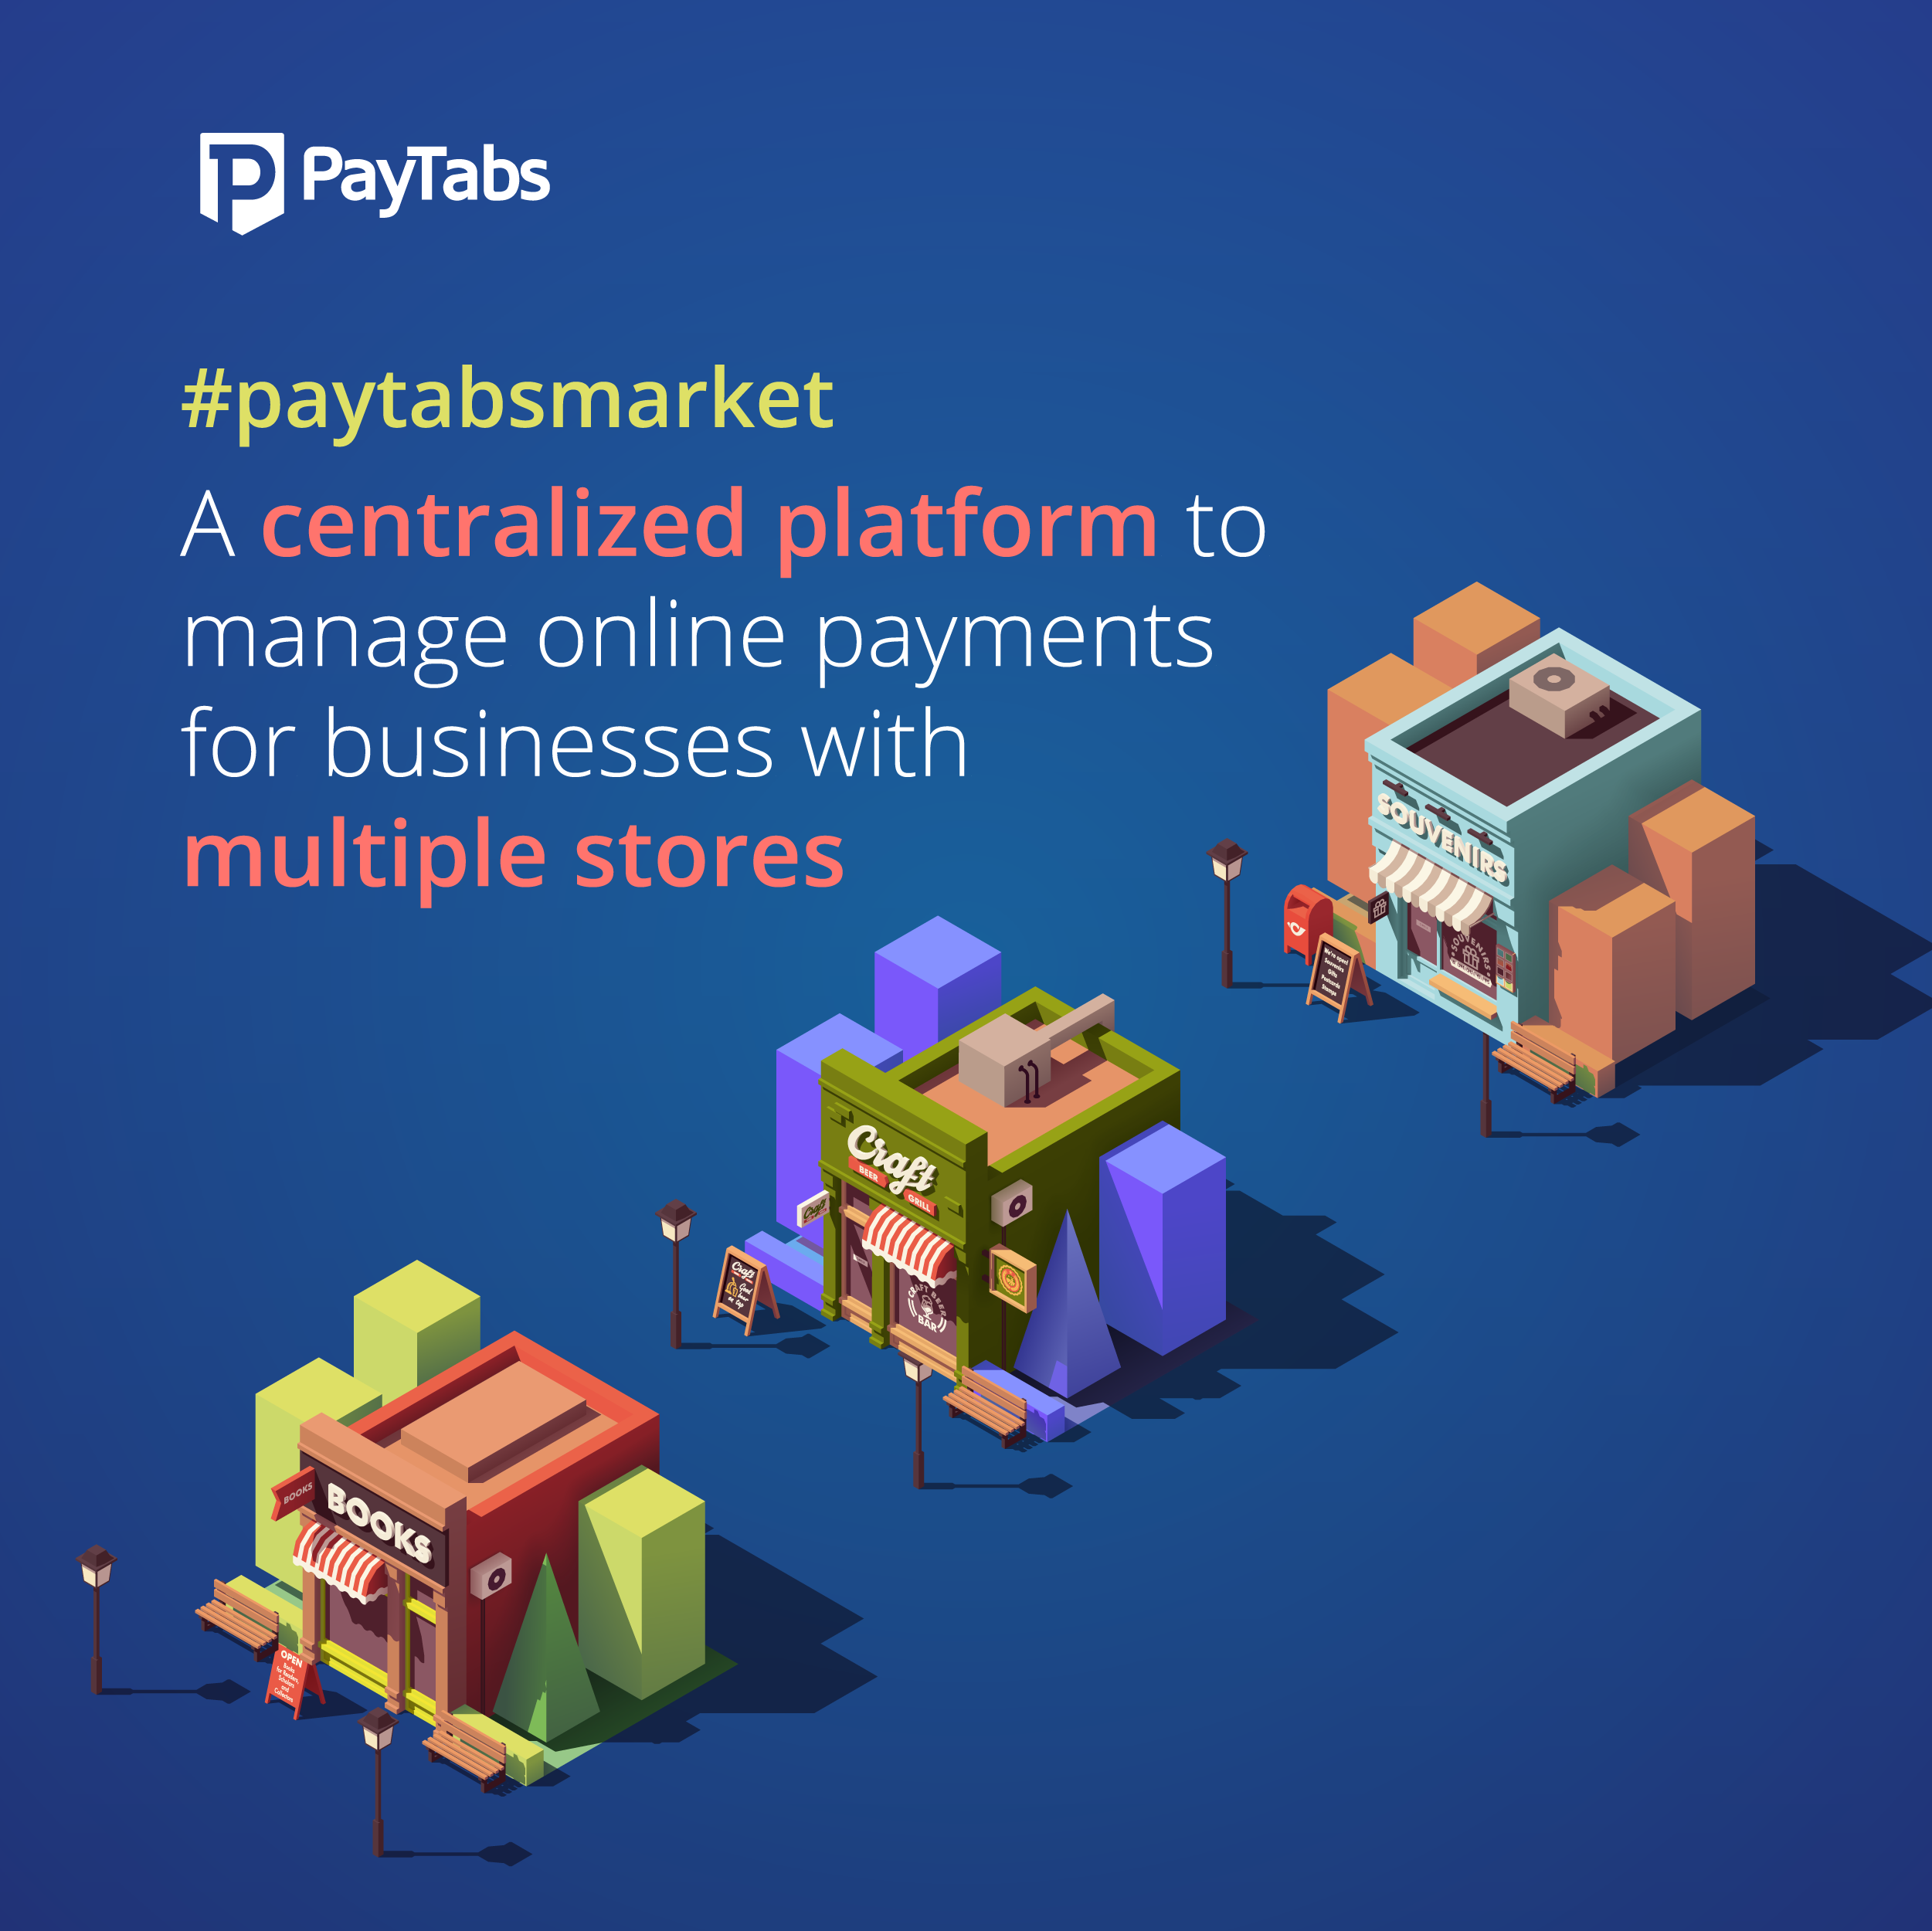 Paytabs launches Paytabs Market, a Centralized Platform to Manage Online Payments across Multiple Branches and Stores.